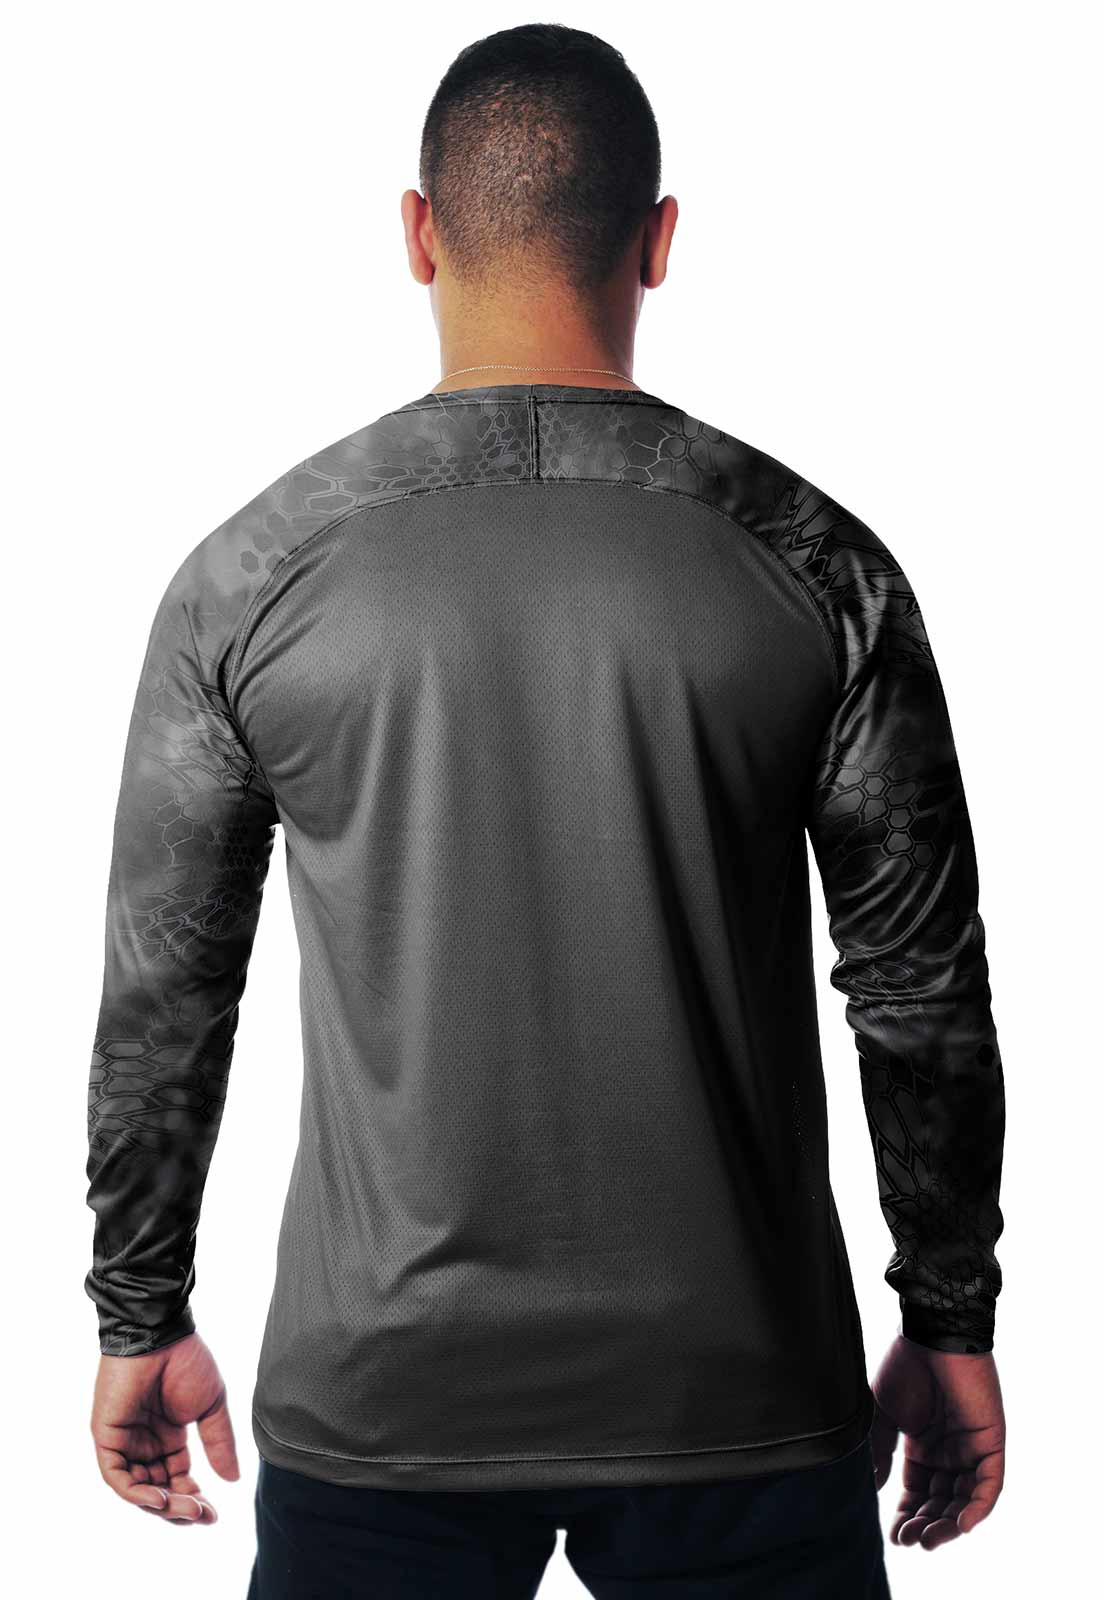 CAMISETA CAMUFLADA KRYPTEC LAZER 19 MANGA LONGA MASCULINA  - REAL HUNTER OUTDOORS